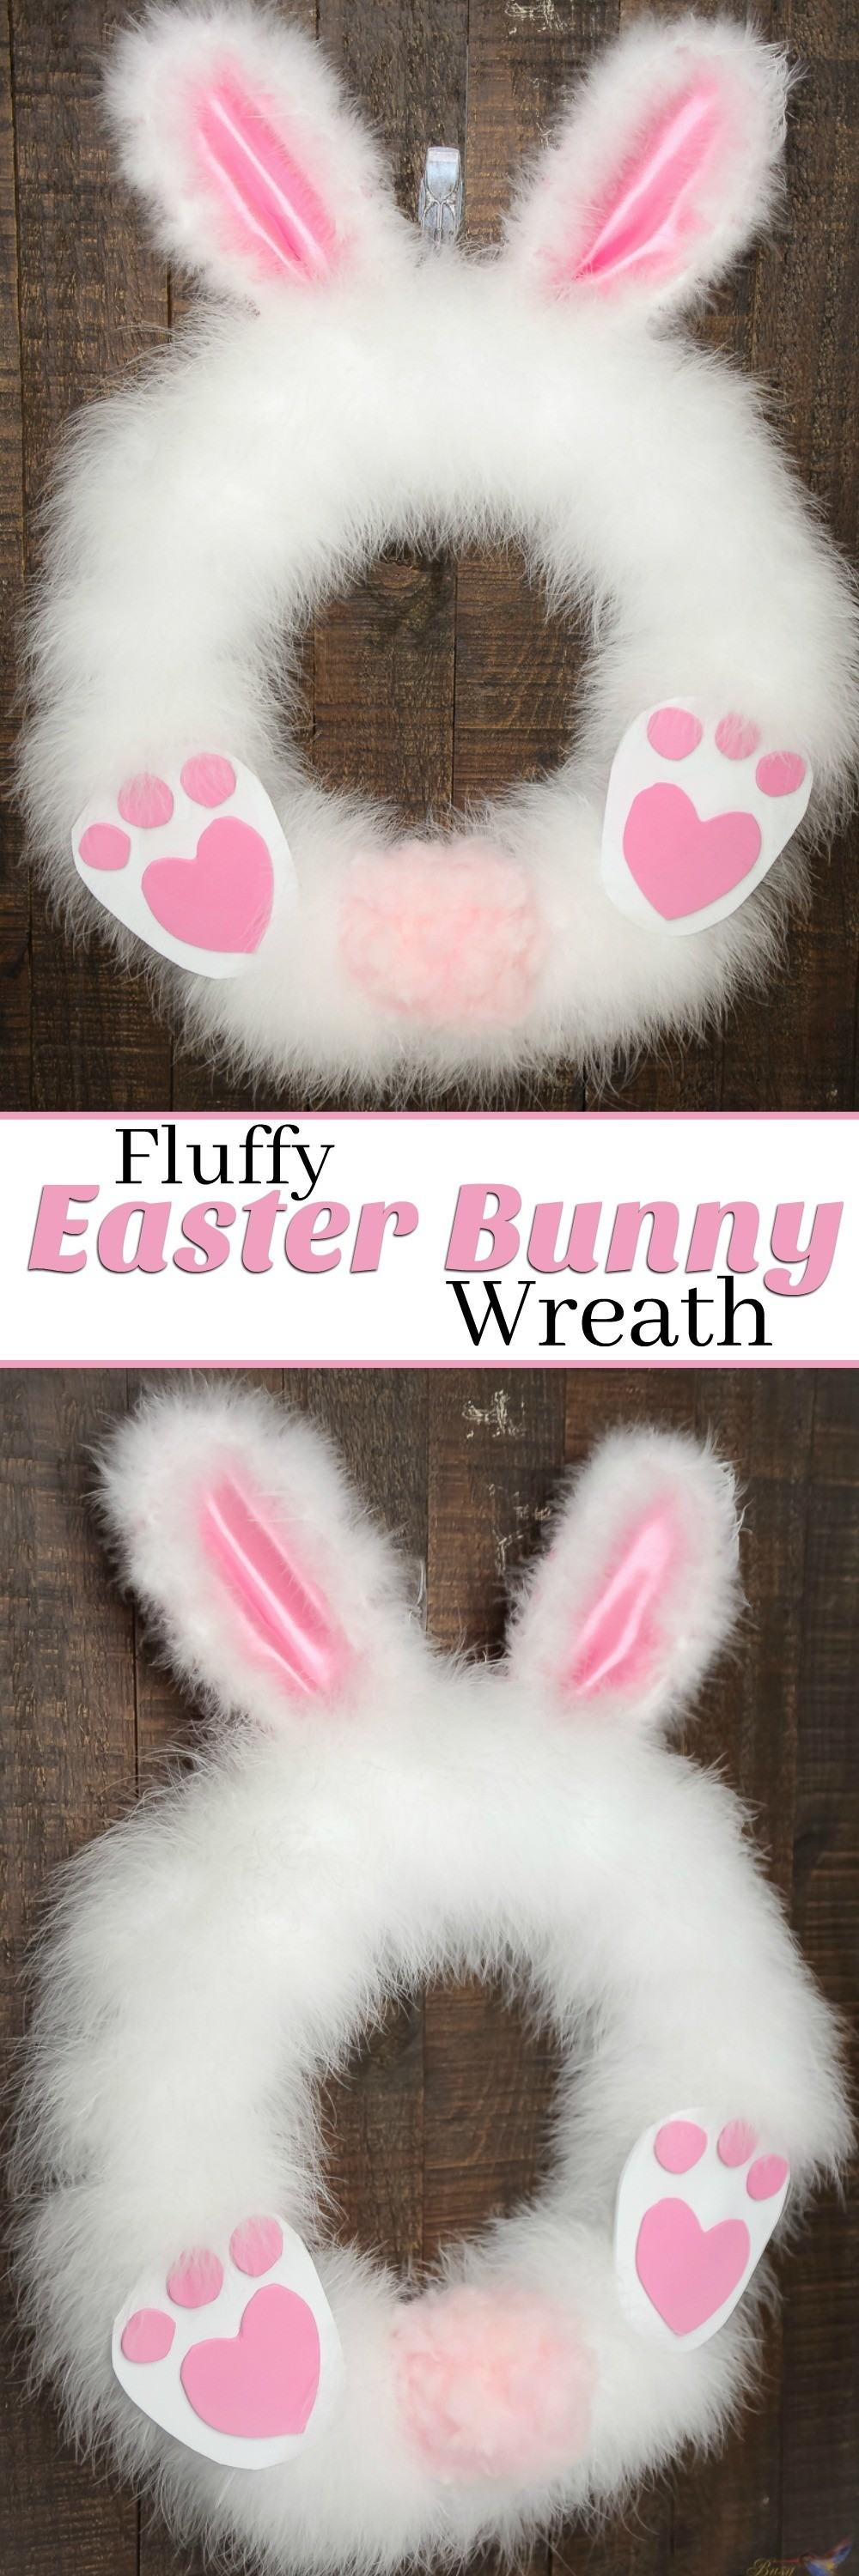 How to make a Fluffy Easter Bunny Wreath in under 30 minutes!